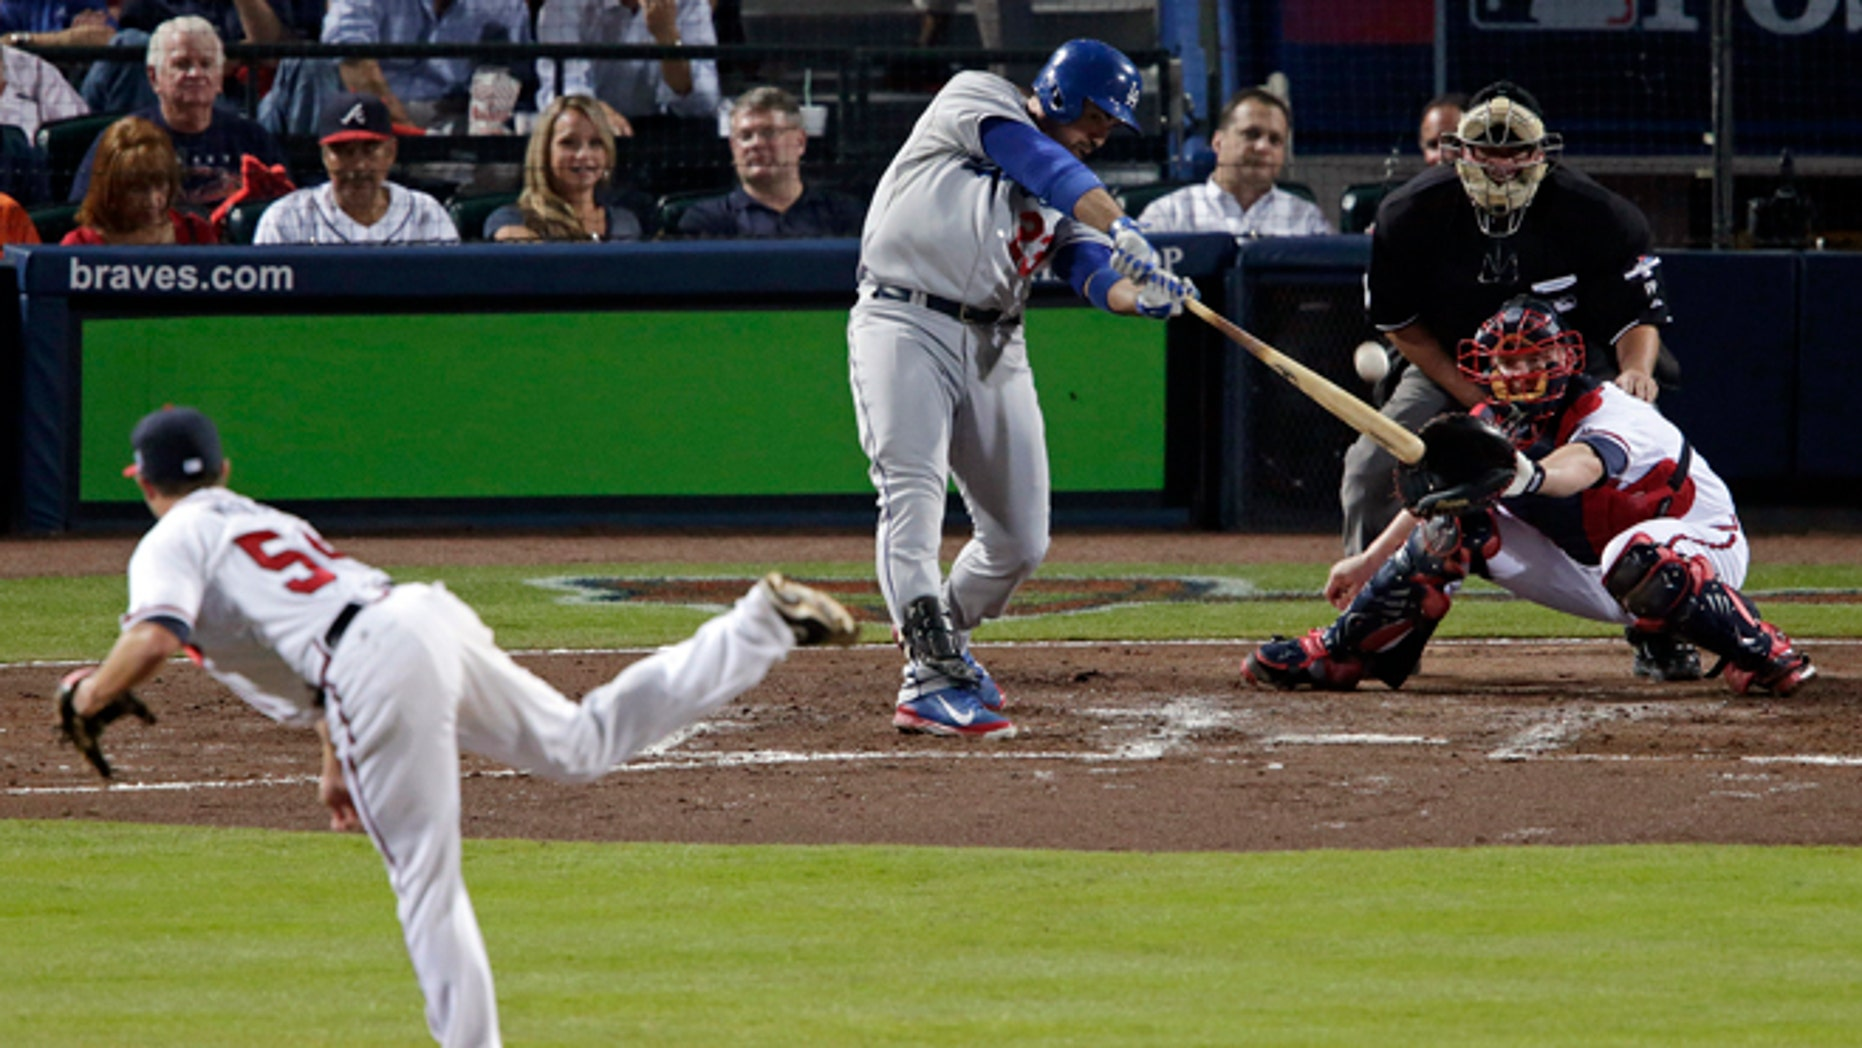 Los Angeles Dodgers Adrian Gonzalez (23) hits a two-run home run against the Atlanta Braves in the third inning of Game 1 of the National League Divisional Series, Thursday, Oct. 3, 2013, in Atlanta.  (AP Photo/Dave Martin)